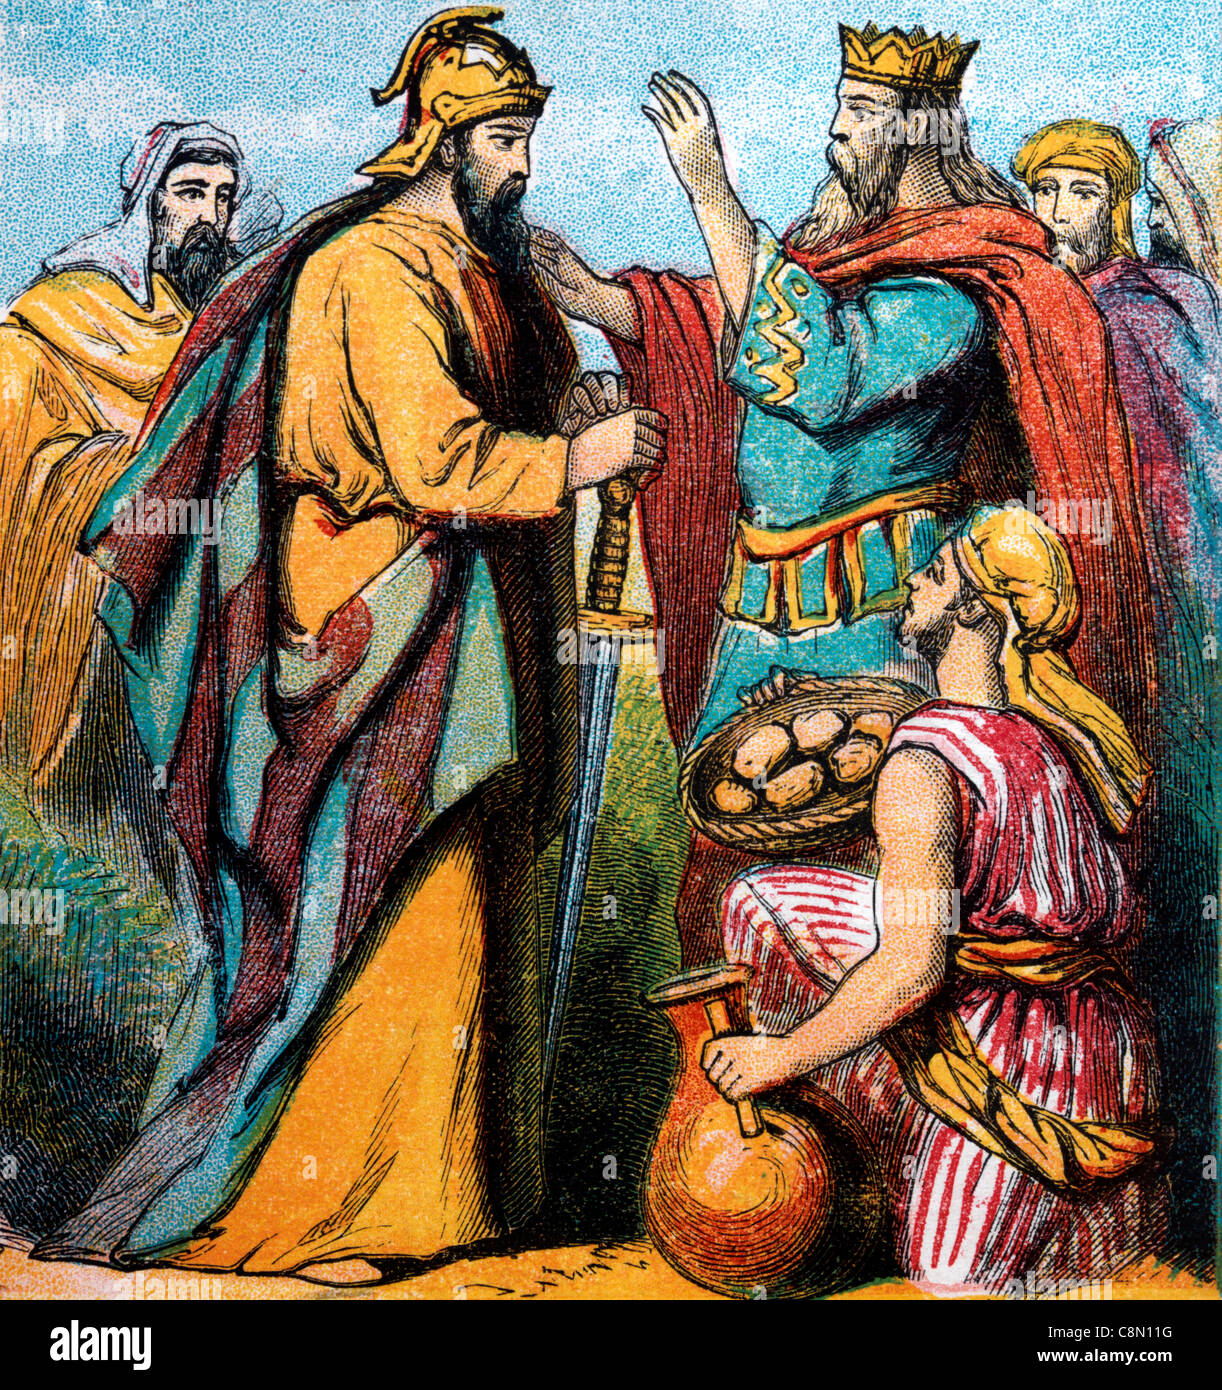 Who was melchizedek